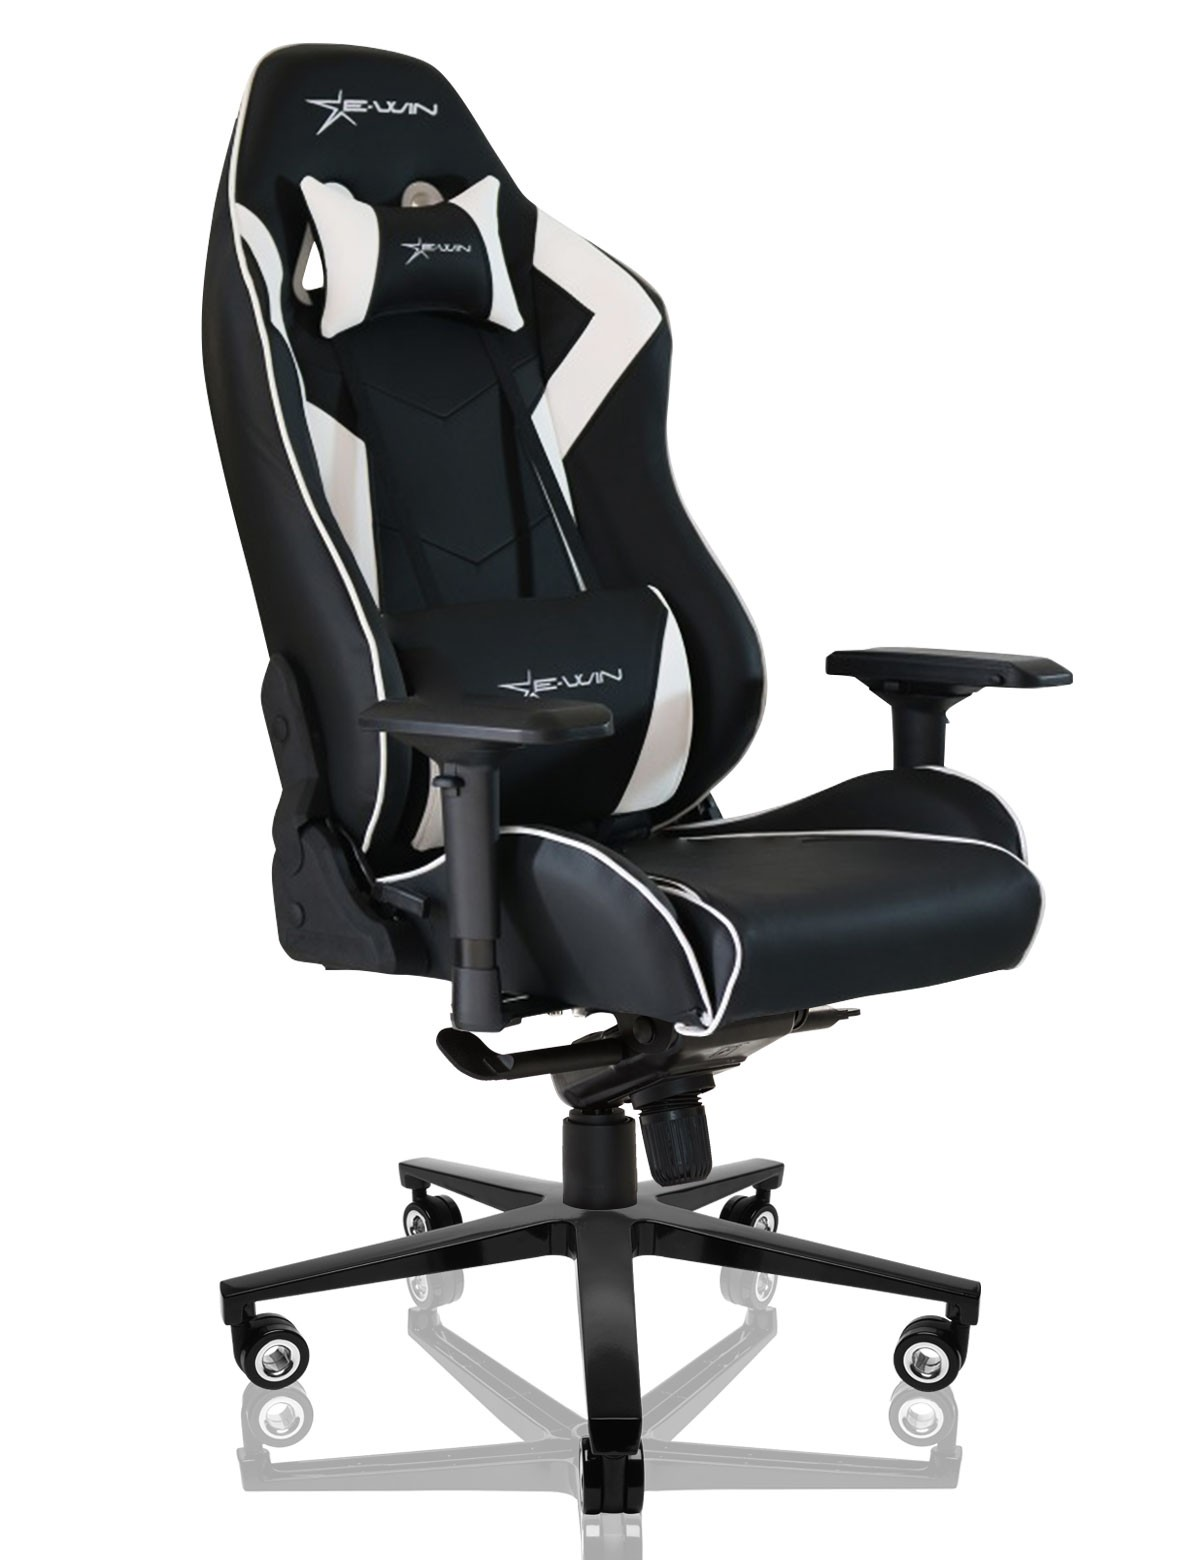 style executive racing black products modern office ergonomic chair swivel white gaming homcom computer chairs